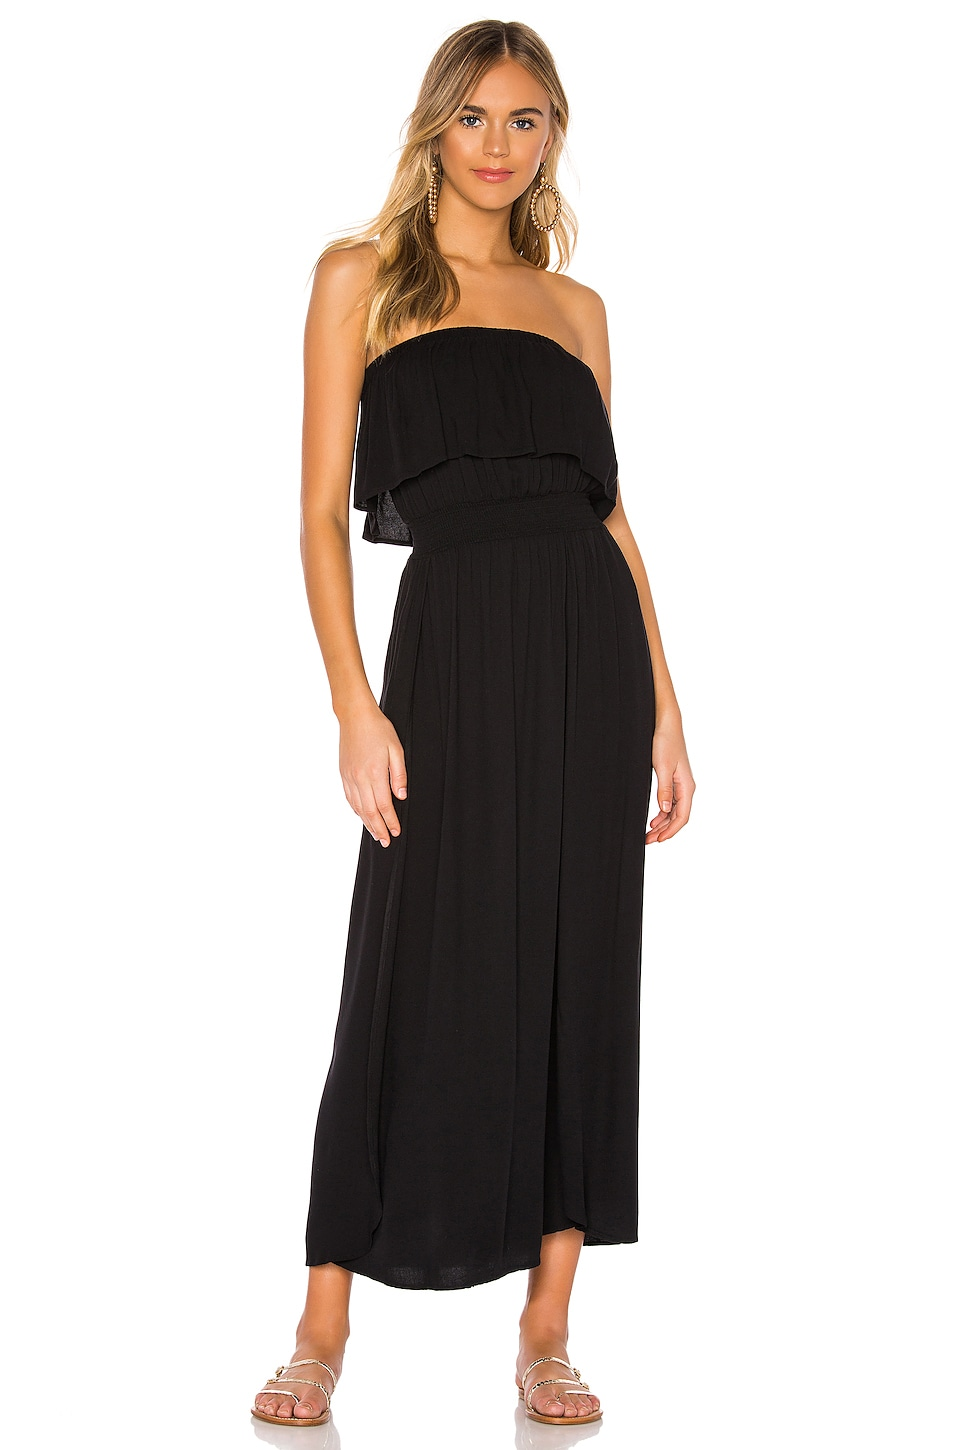 Bobi Beach Crepe Maxi Dress in Black